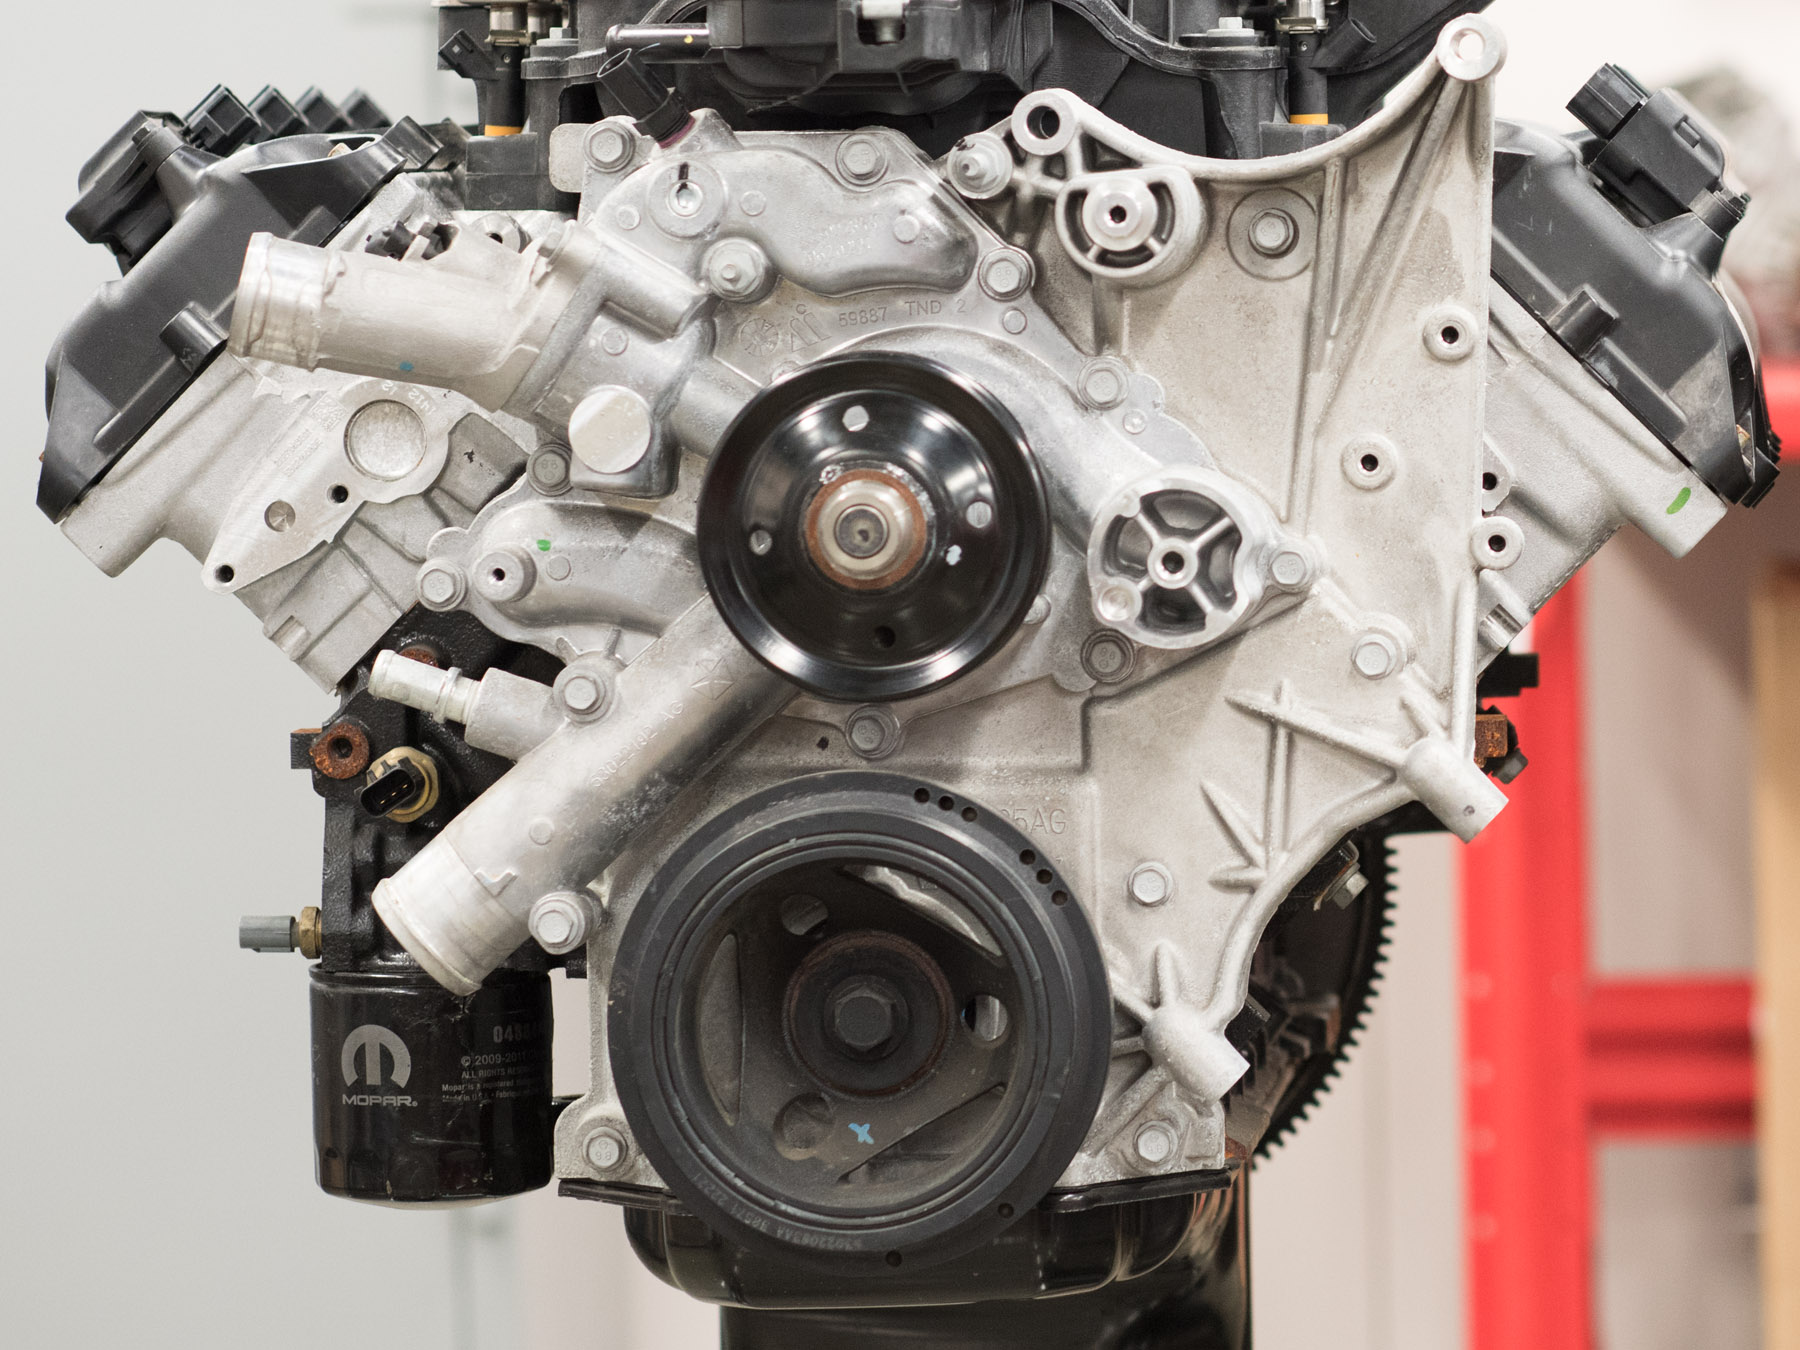 Close up on an engine